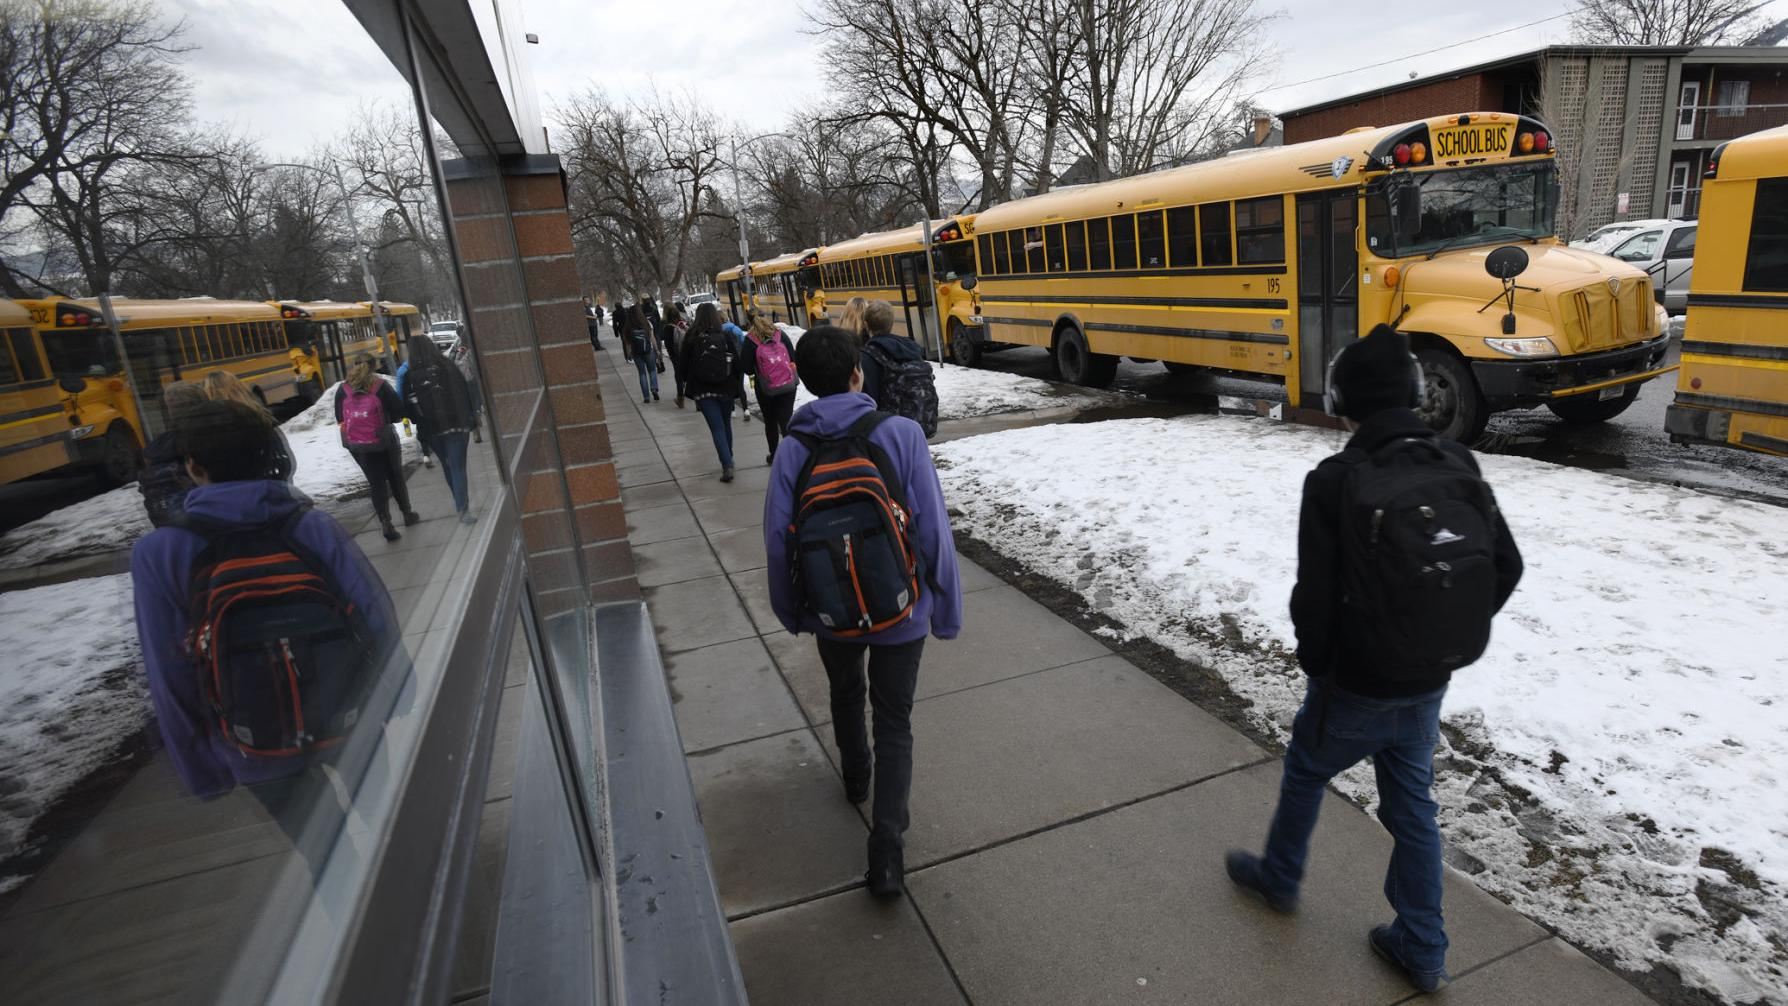 Later school start times are better for teens, but MCPS says cost may be too high